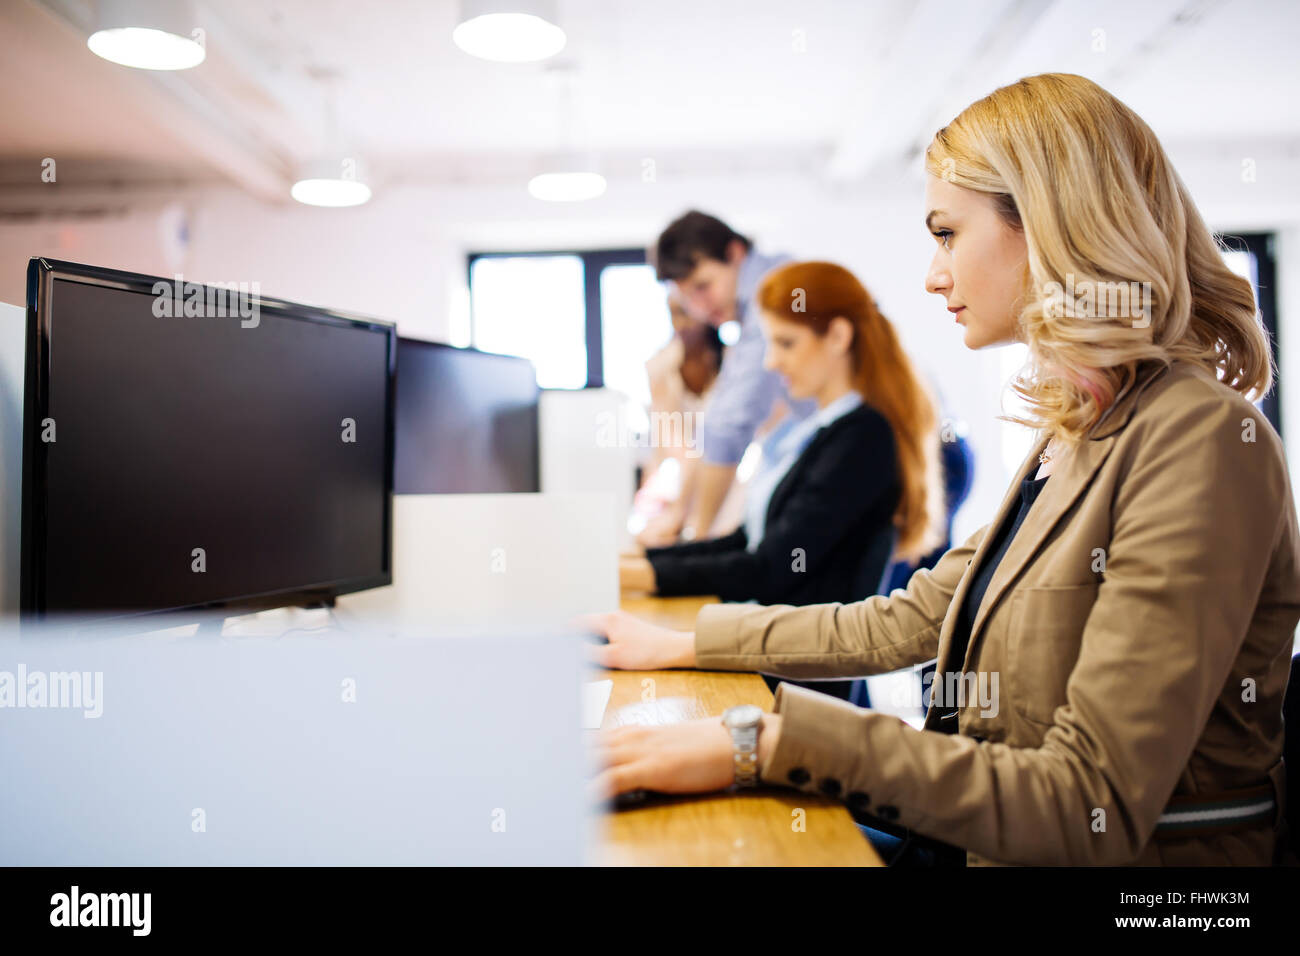 Businesswoman using computer in office while sitting at desk - Stock Image